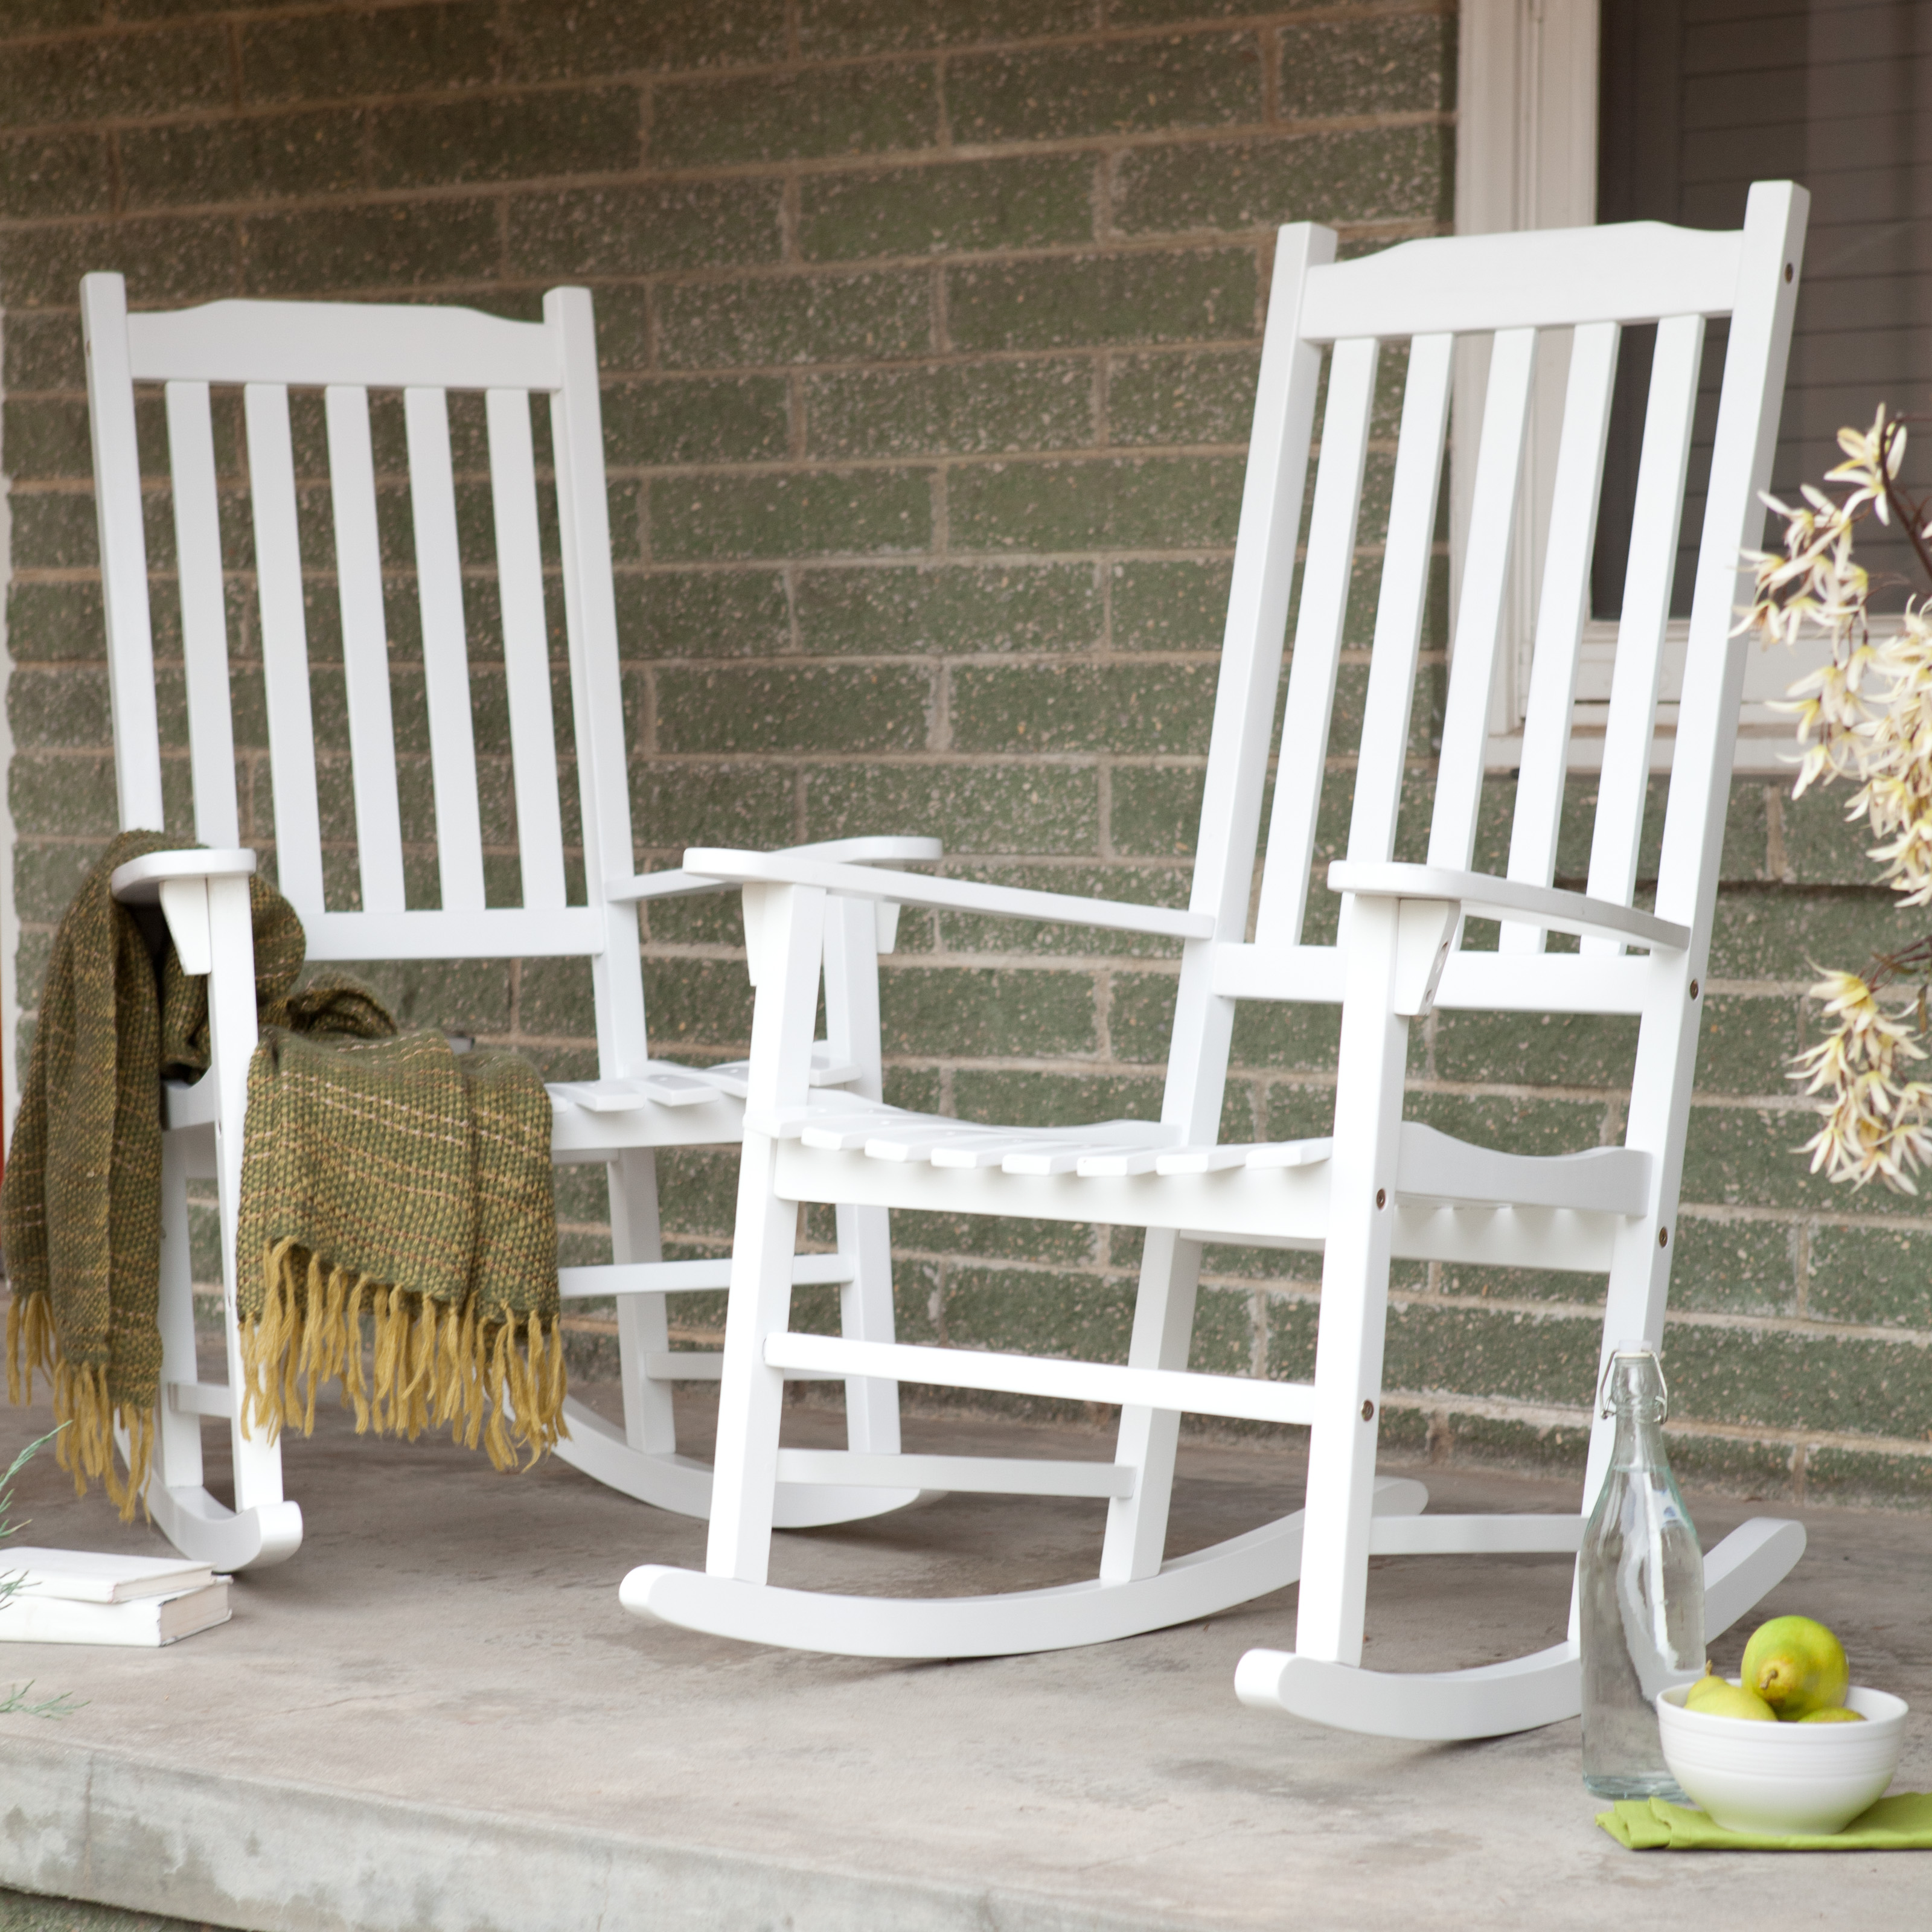 Coral Coast Indoor/Outdoor Mission Slat Rocking Chairs - White - Set of 2 | Hayneedle & Coral Coast Indoor/Outdoor Mission Slat Rocking Chairs - White - Set ...